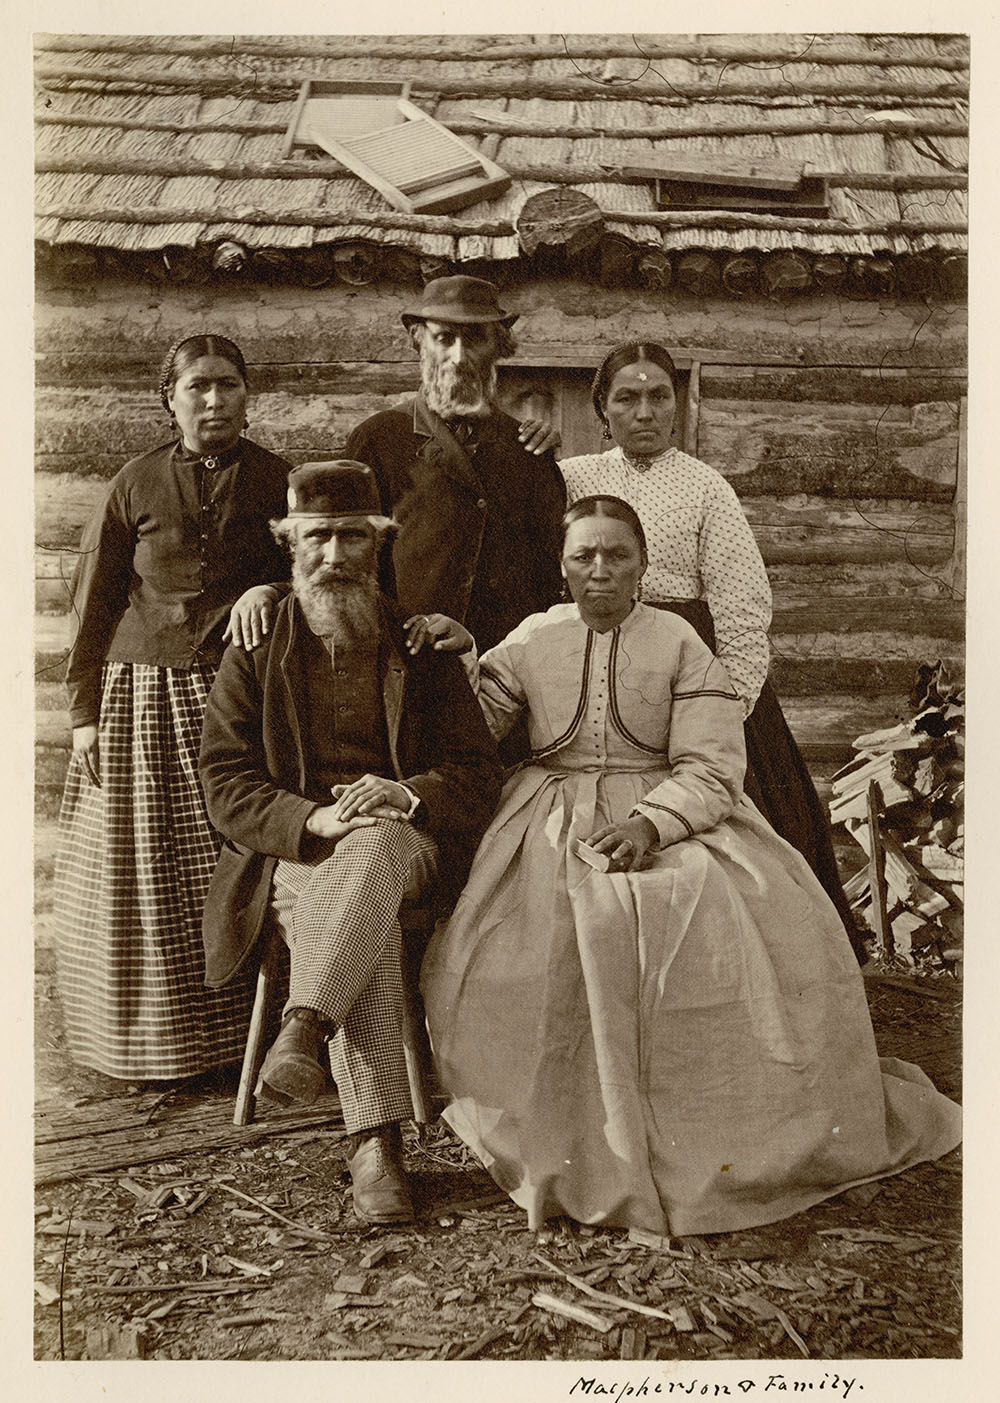 Black and white photograph of one man and one women sitting down with three other figures standing behind them in front of a wooden building.